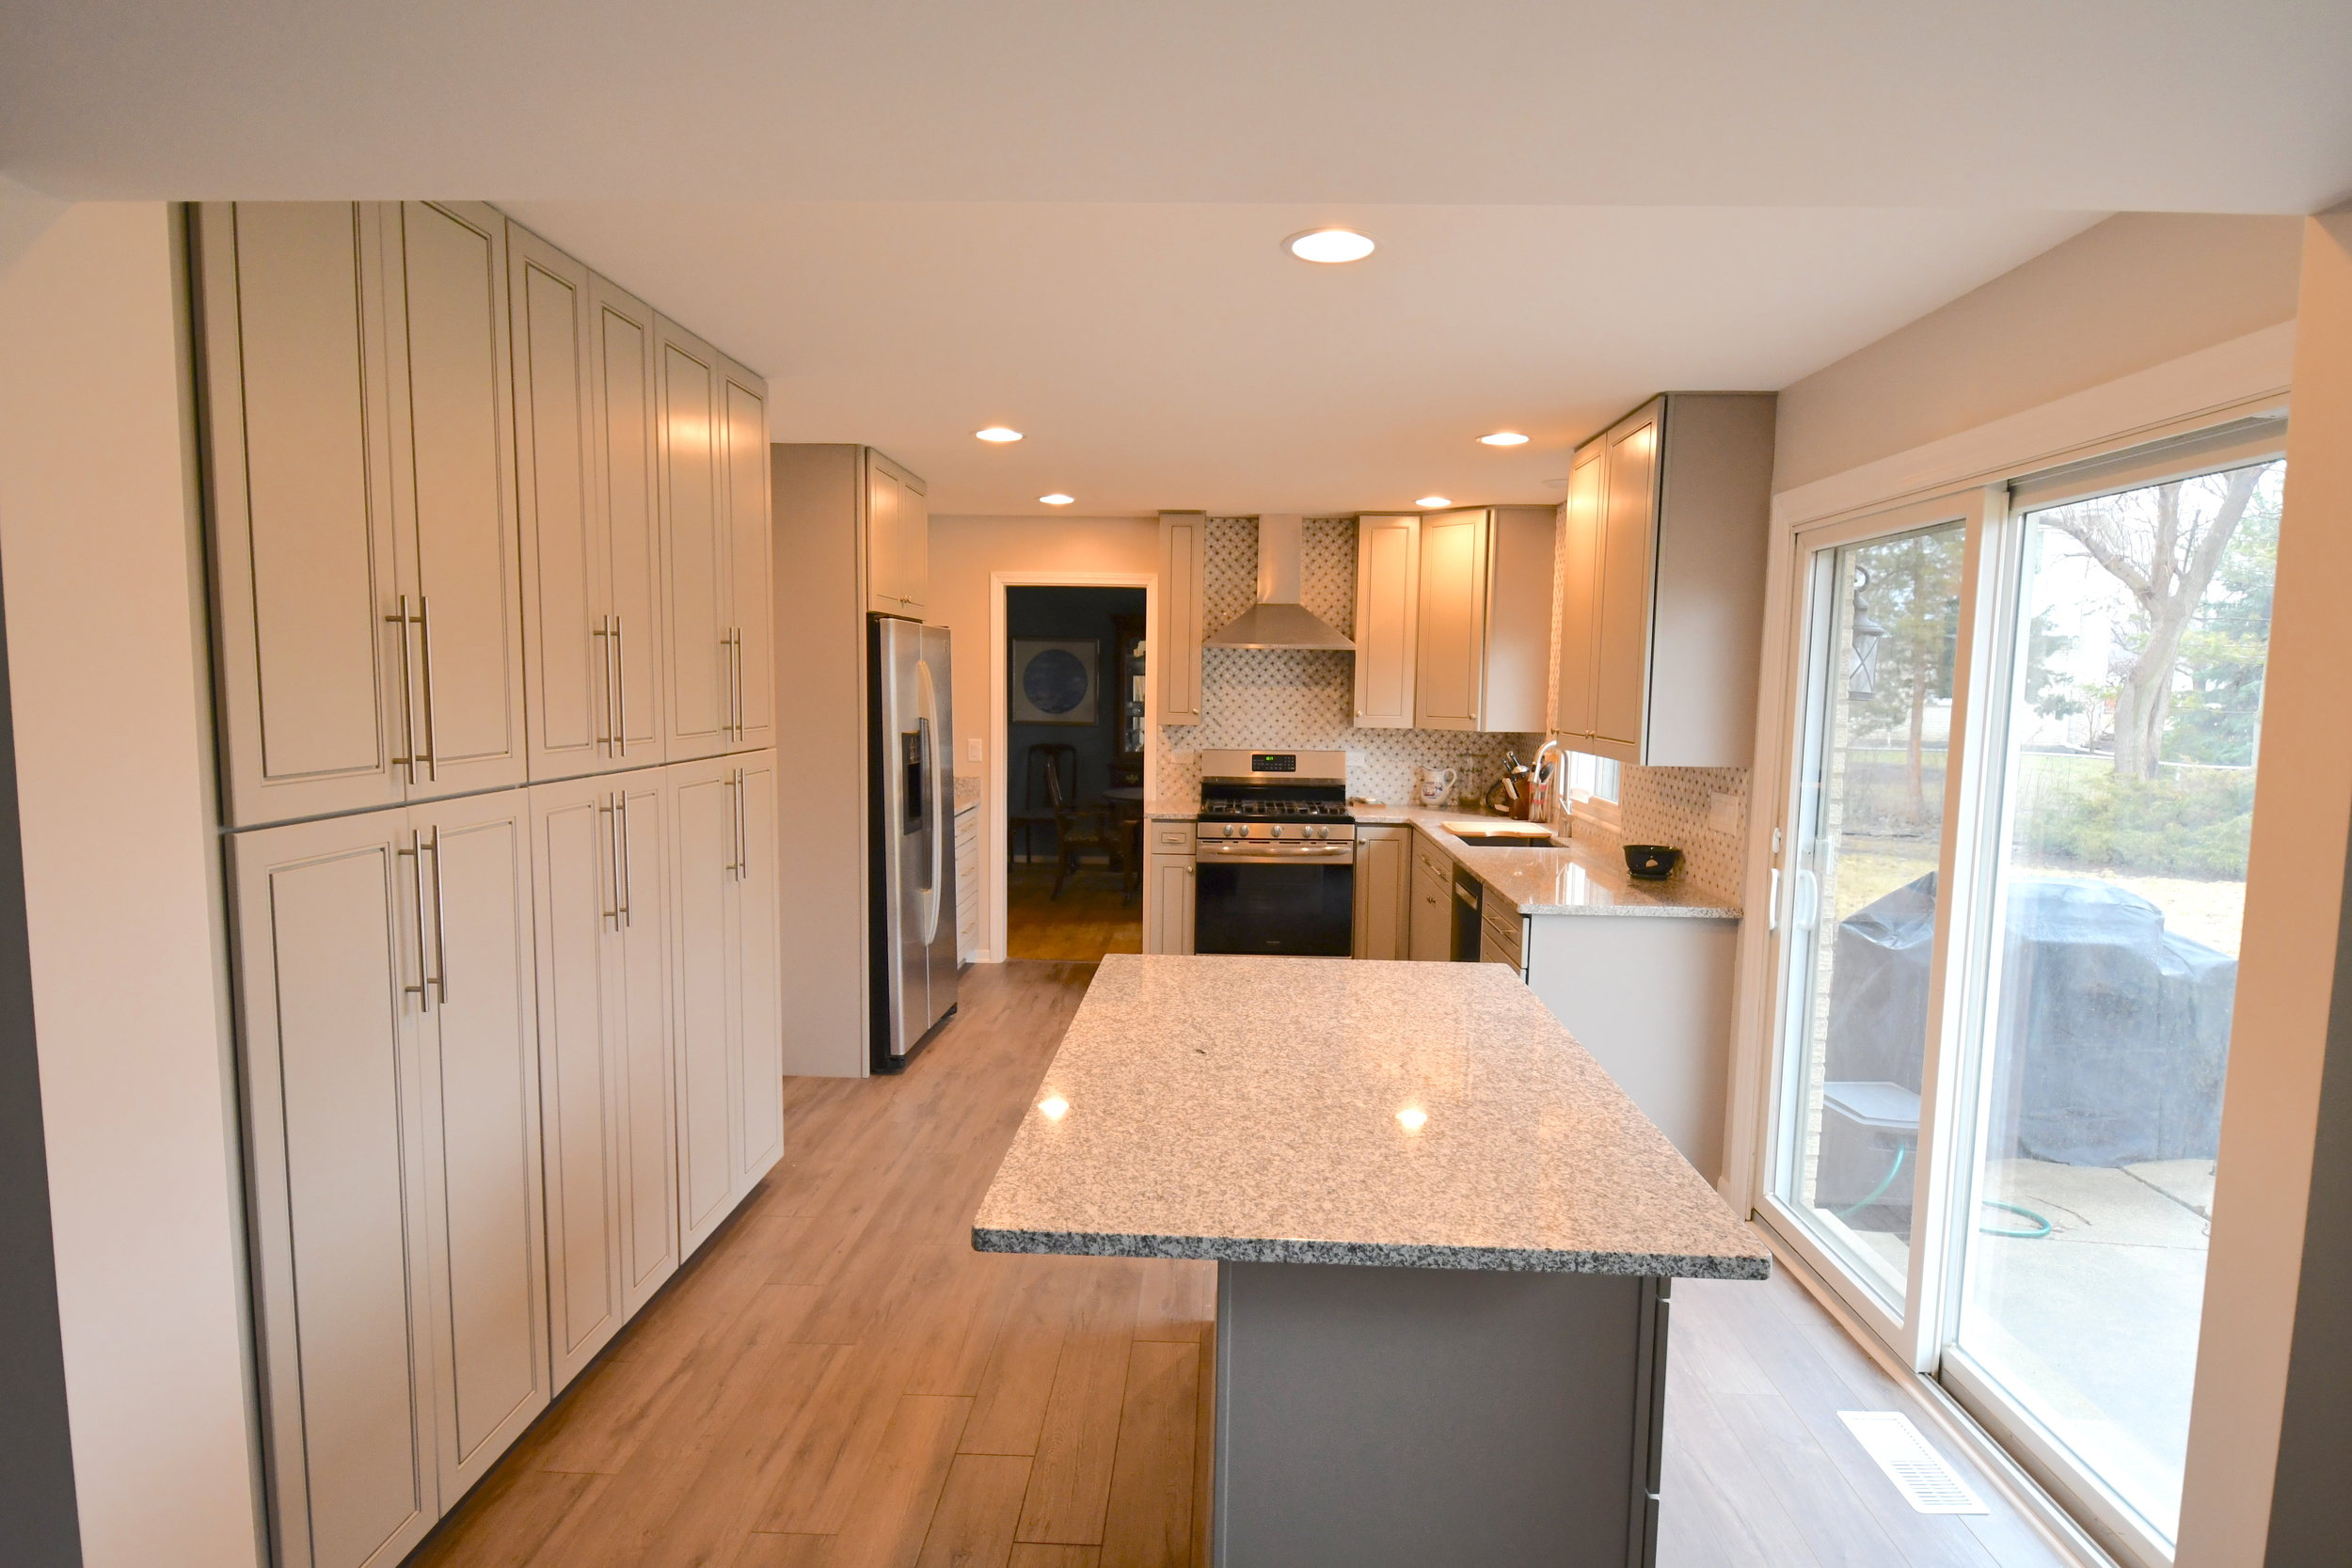 Kitchen Remodel Elmhurst - March 2019 - Kitchen remodel completed by Kure Construction Inc. for an Elmhurst homeowner.